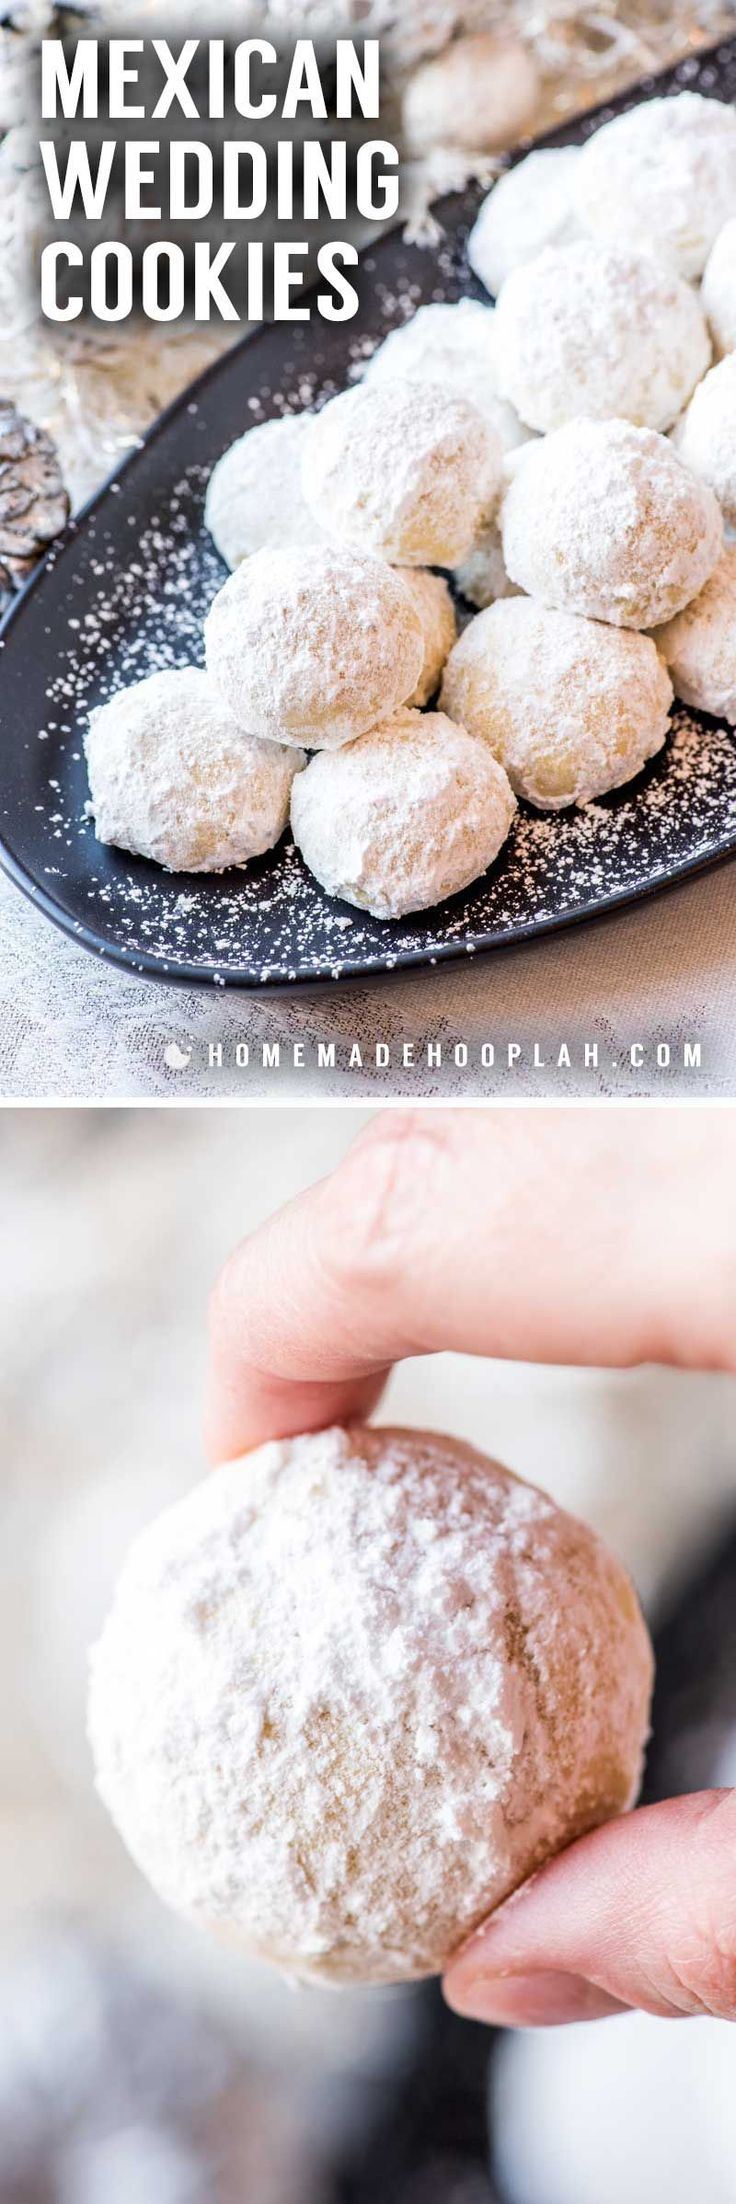 Mexican Wedding Cookies! These teacakes go by many names, but the delicious taste remains the same: a sugar-covered almond cookie with a melt-in-your-mouth texture. | HomemadeHooplah.com #MexicanWeddingIdeas